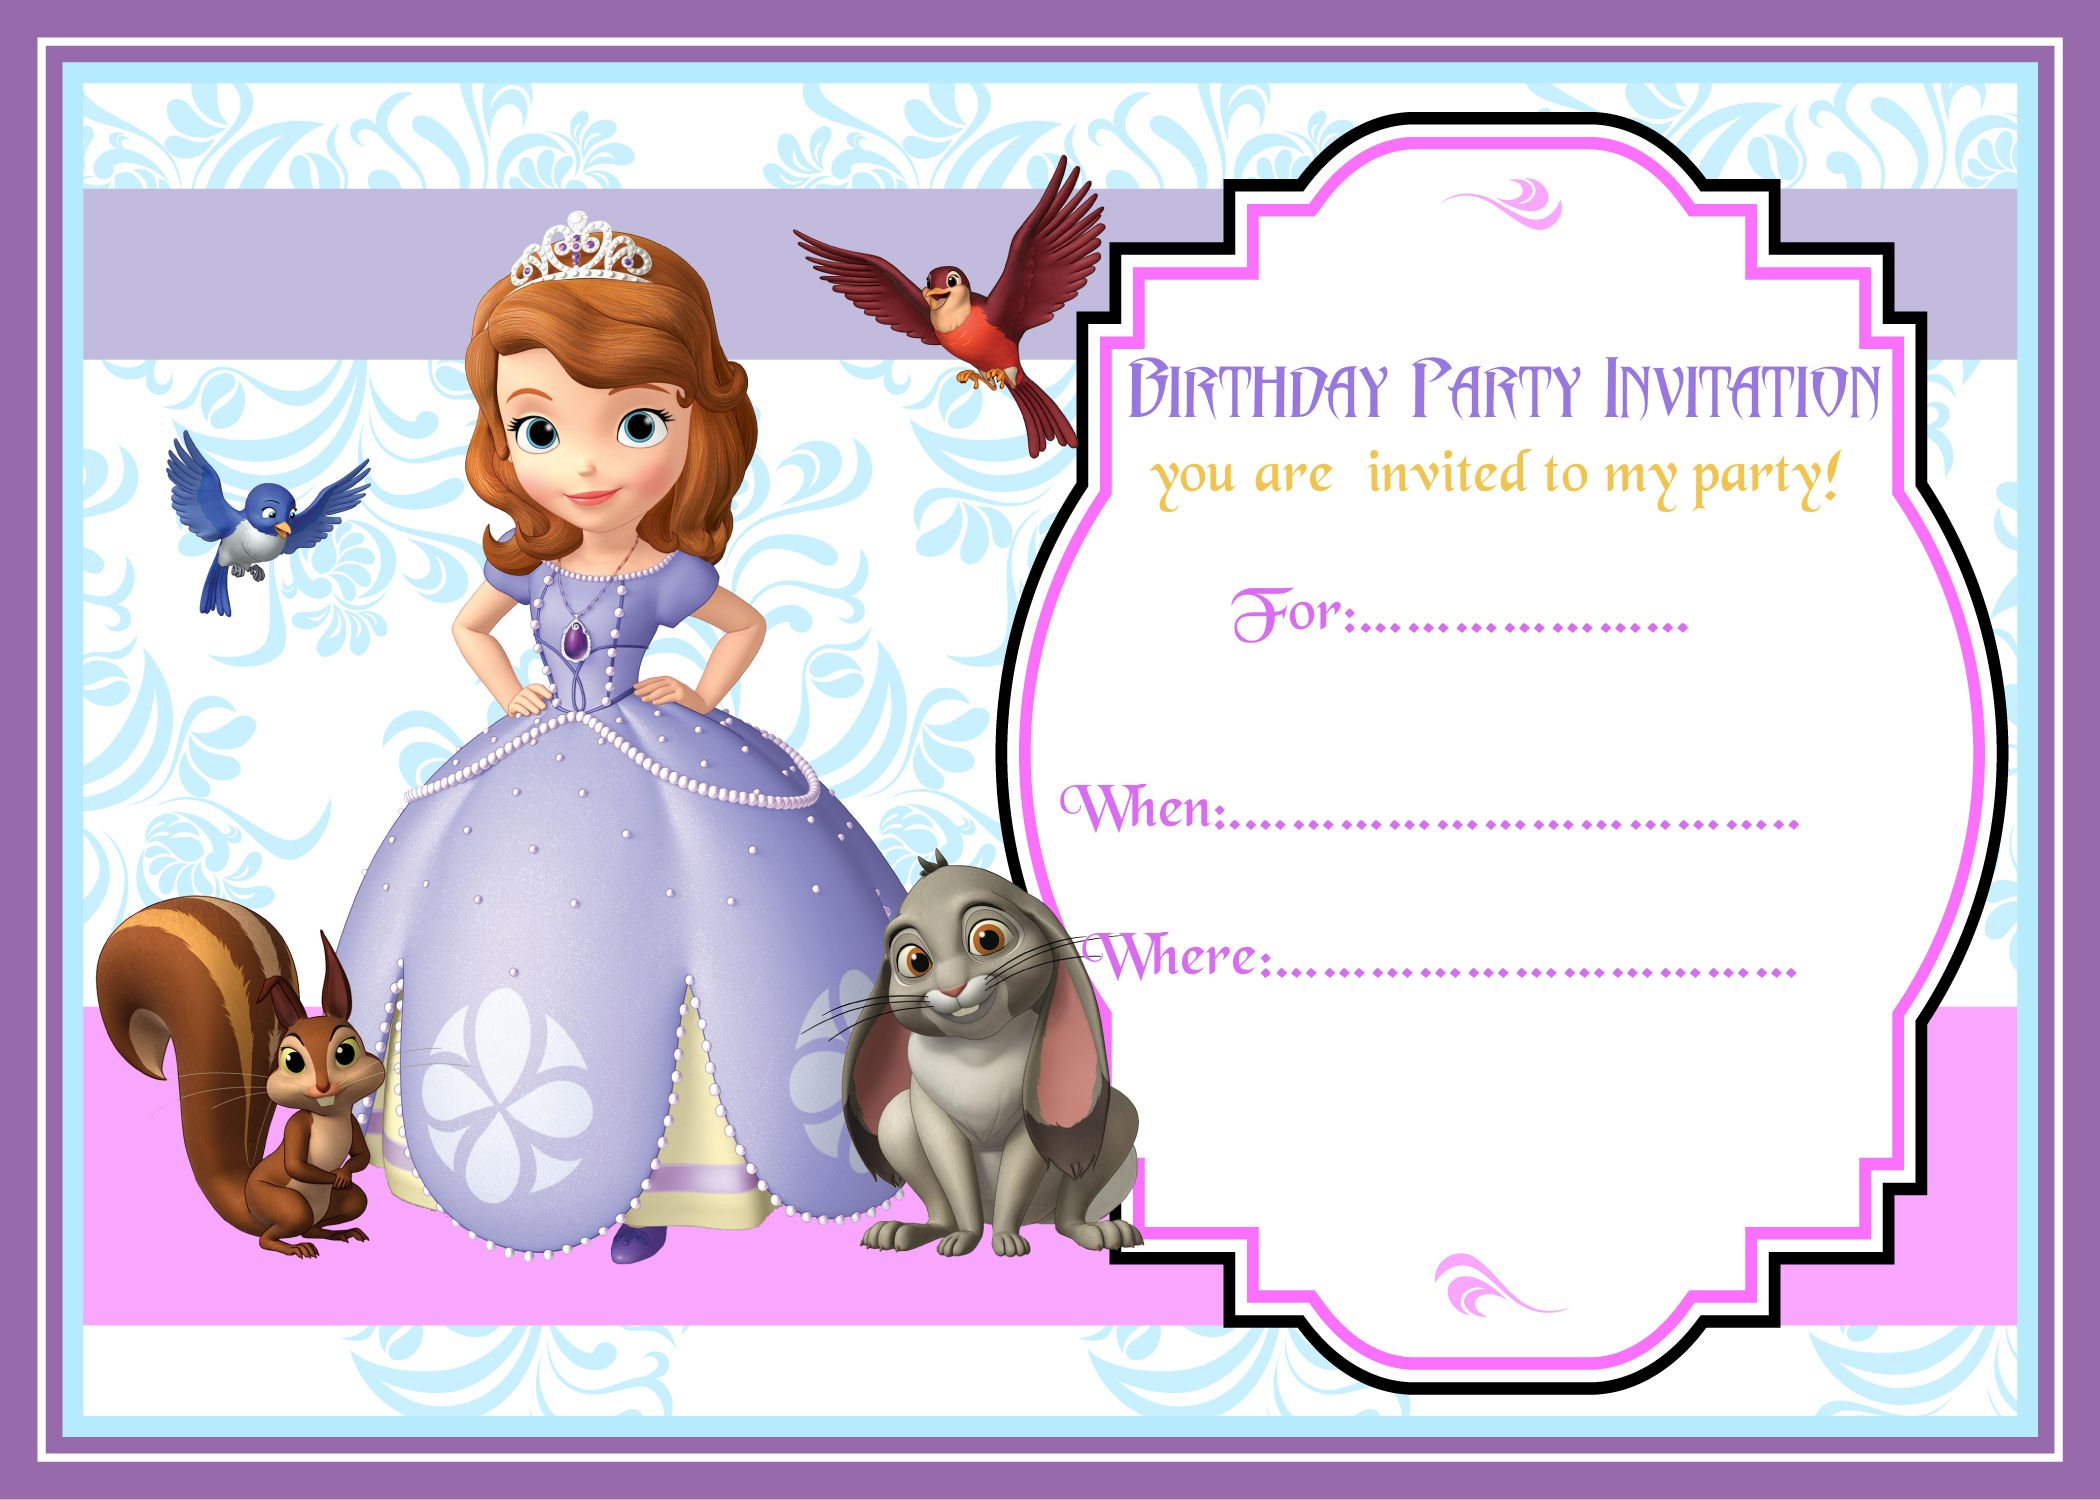 Holidays And Events Pinterest Events - Sofia the first party invitation template